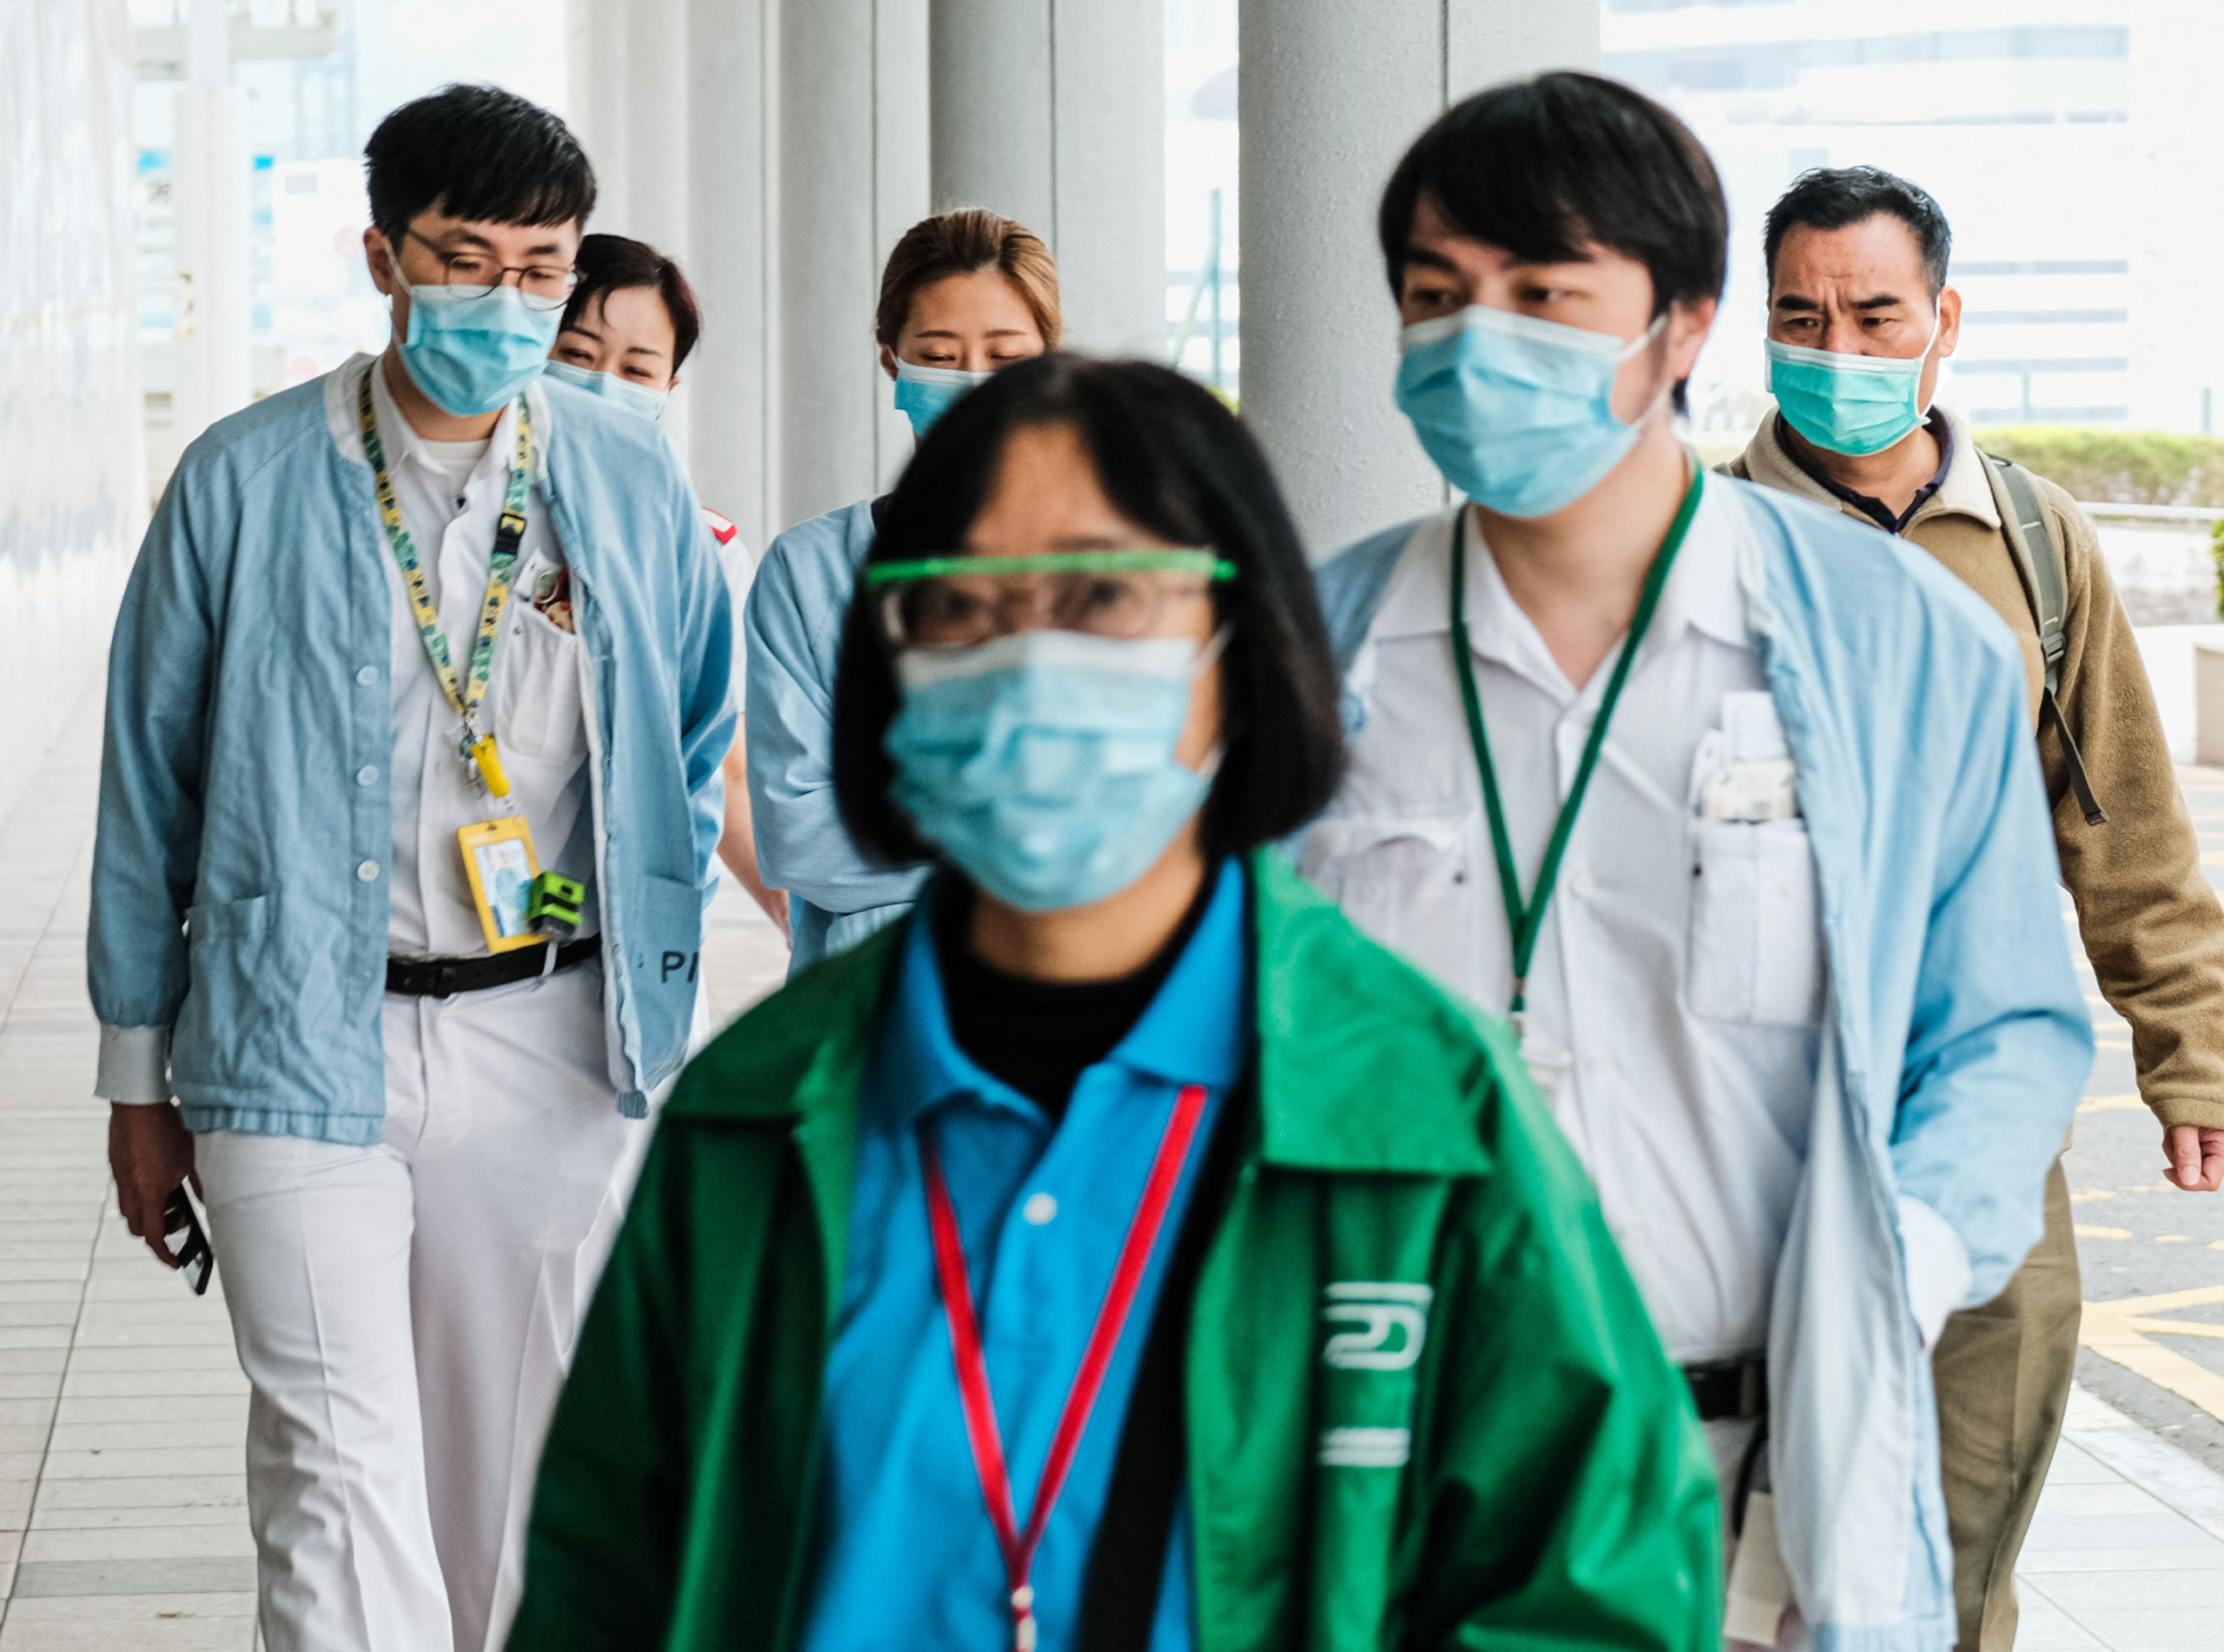 Should face masks be mandatory when visiting hospitals?